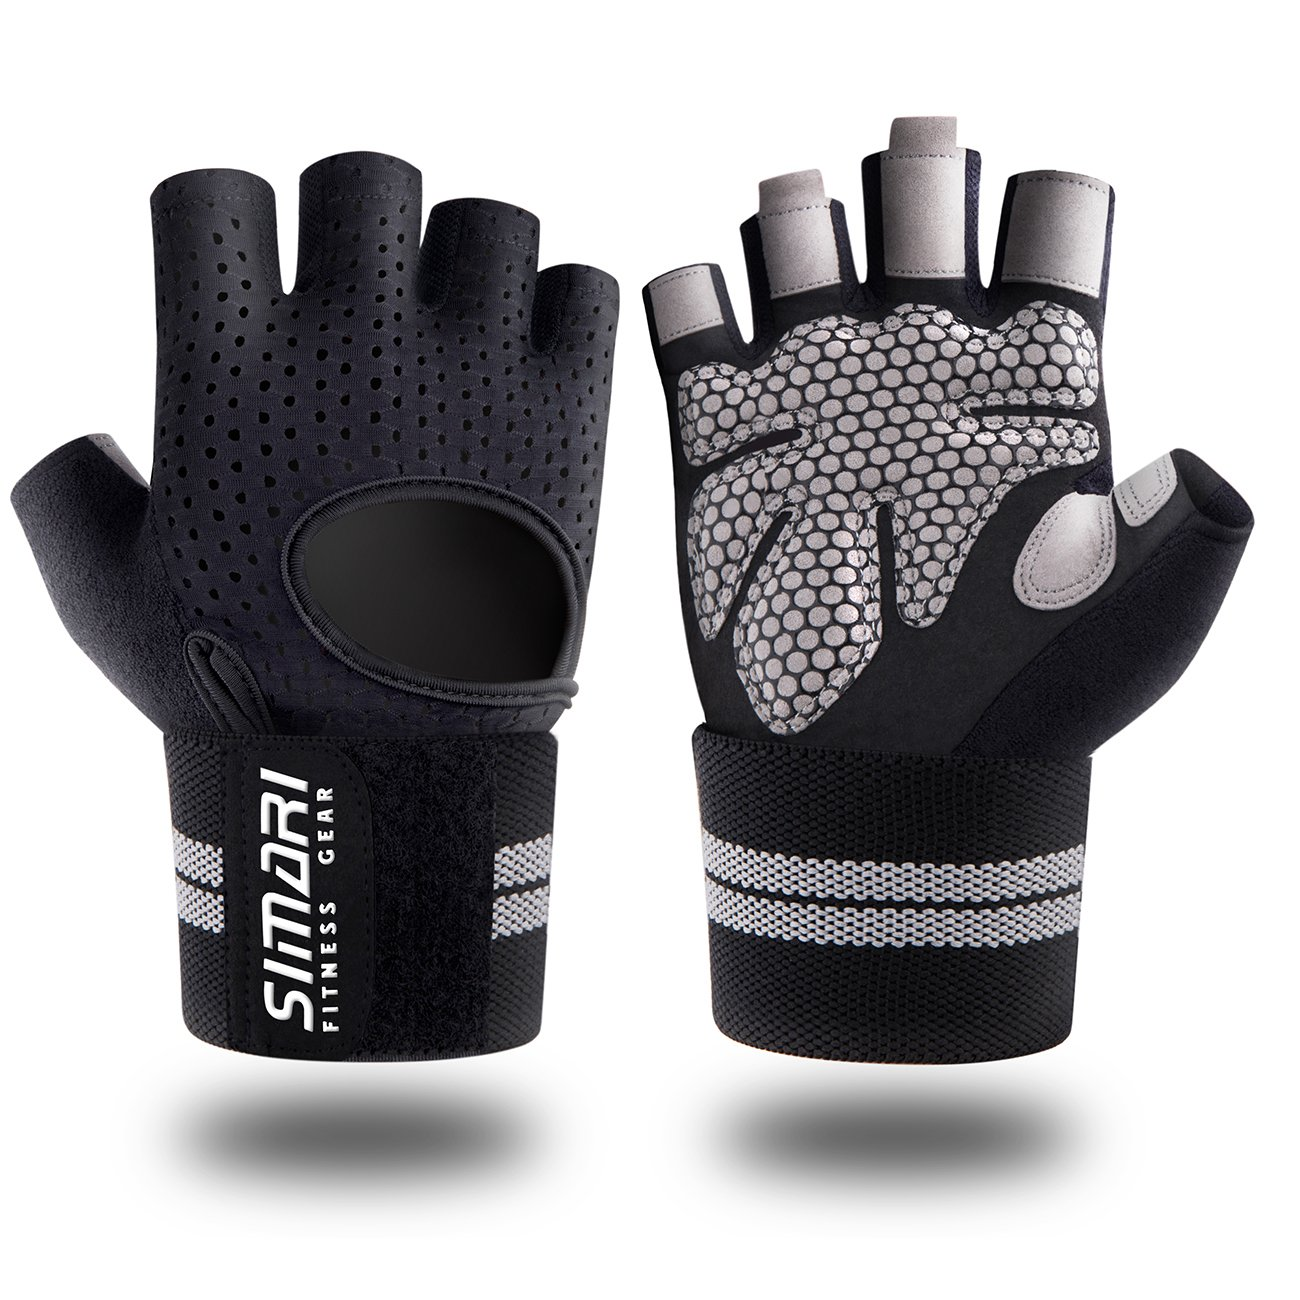 SIMARI Workout Gloves for Women Men,Training Gloves with Wrist Support for Fitness Exercise Weight Lifting Gym Crossfit,Made of Microfiber and Lycra SMRG902(Black S) by SIMARI